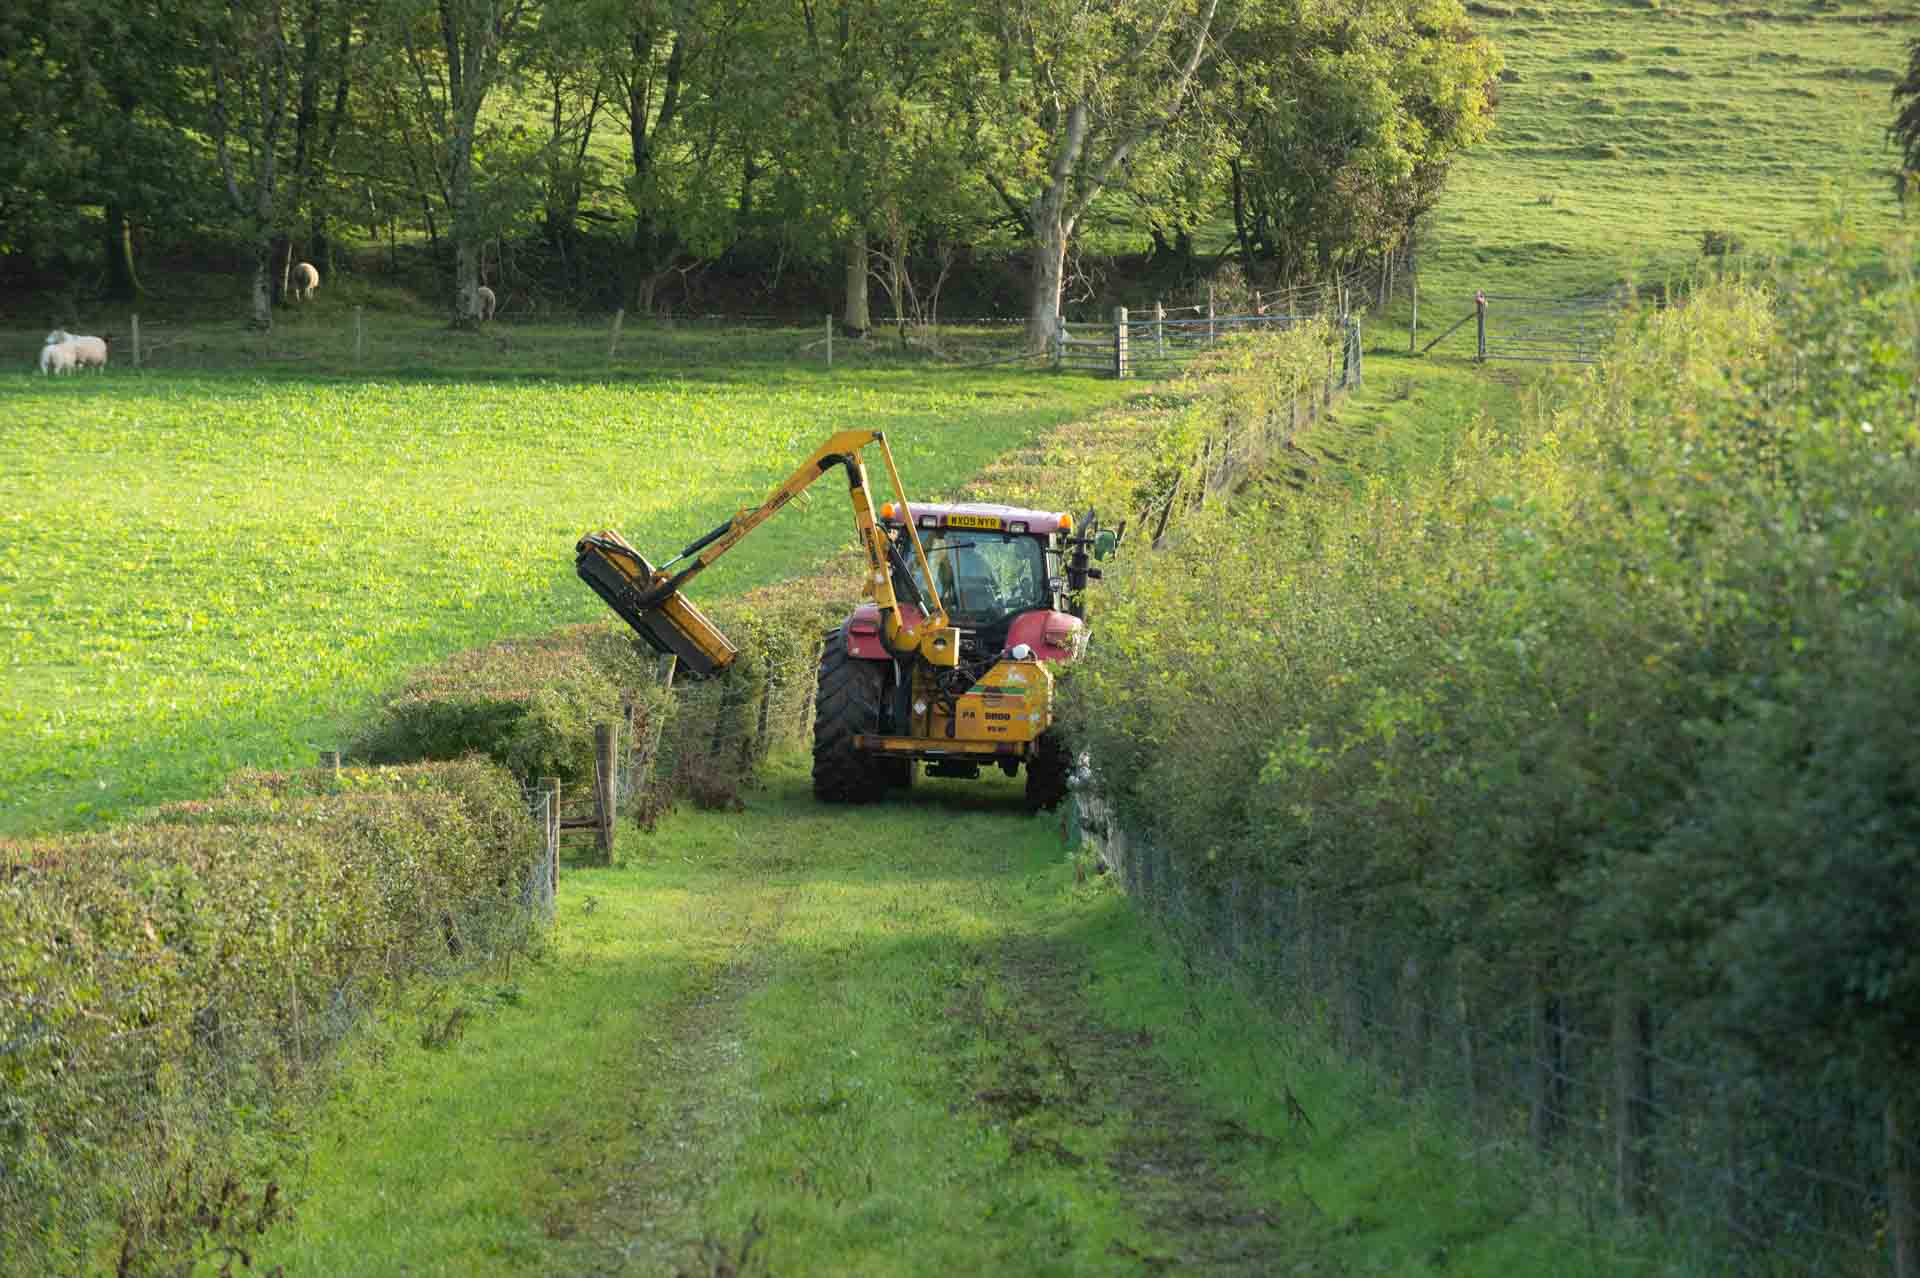 Pearce beginning the task of cutting the mixed hedges